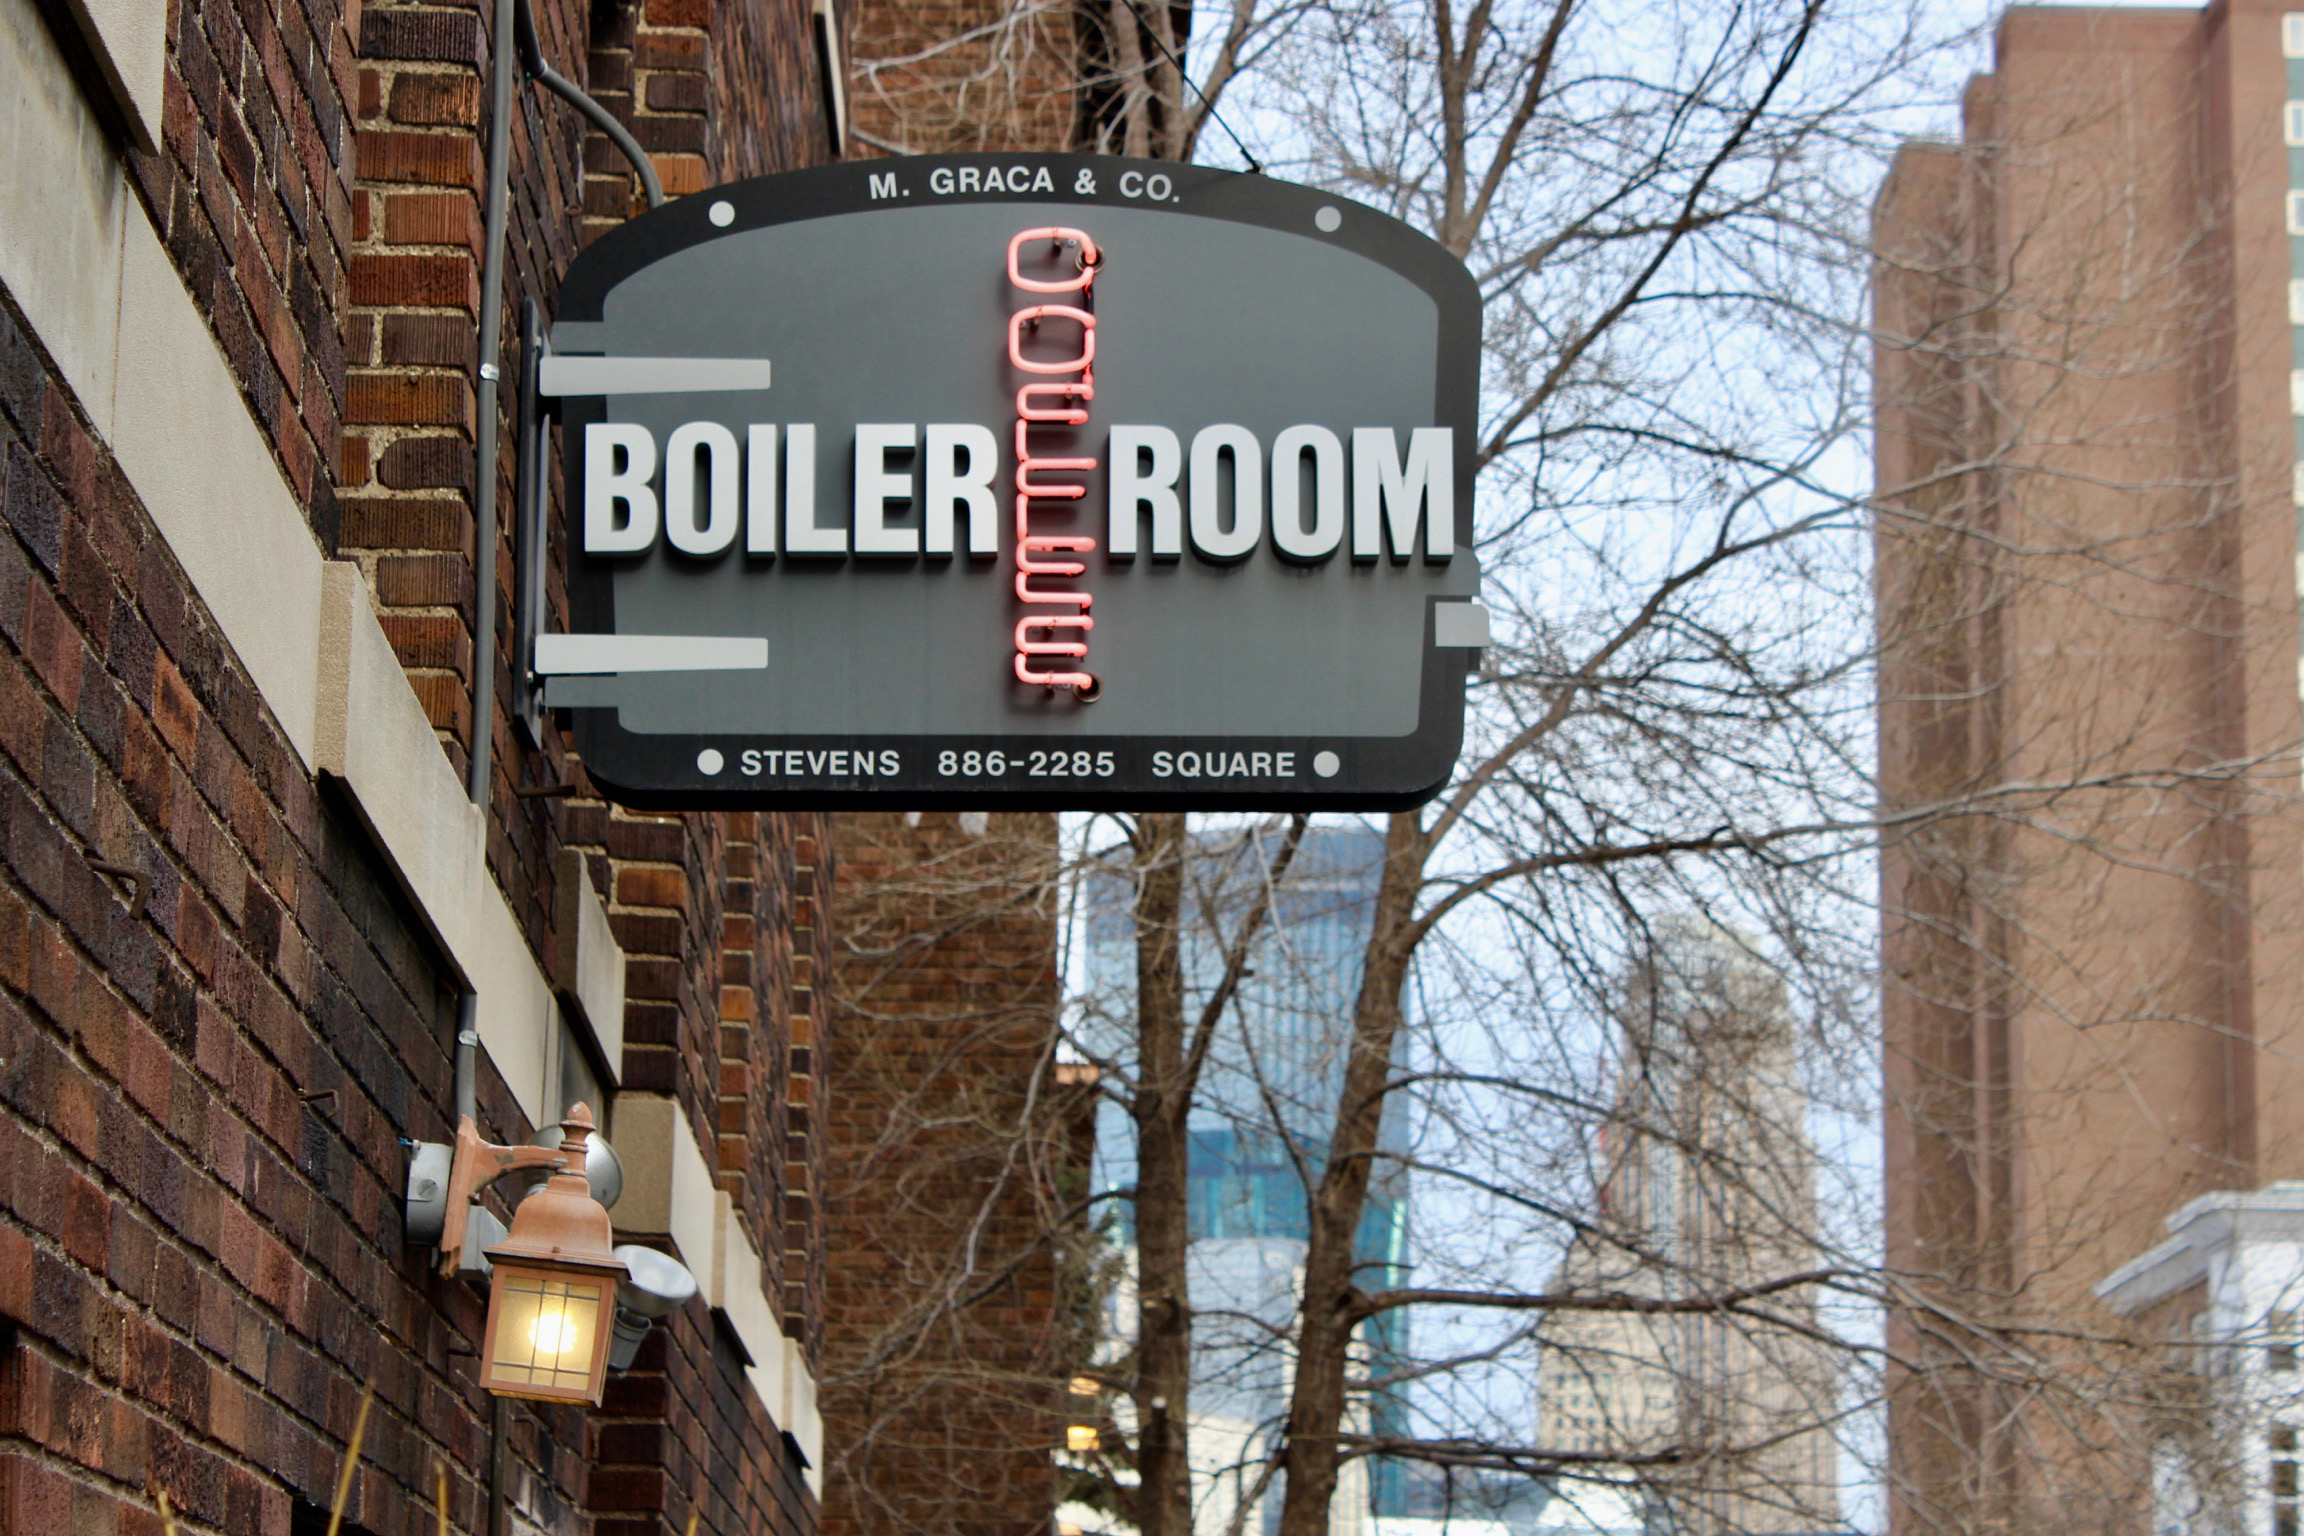 the boiler room storefront neon sign